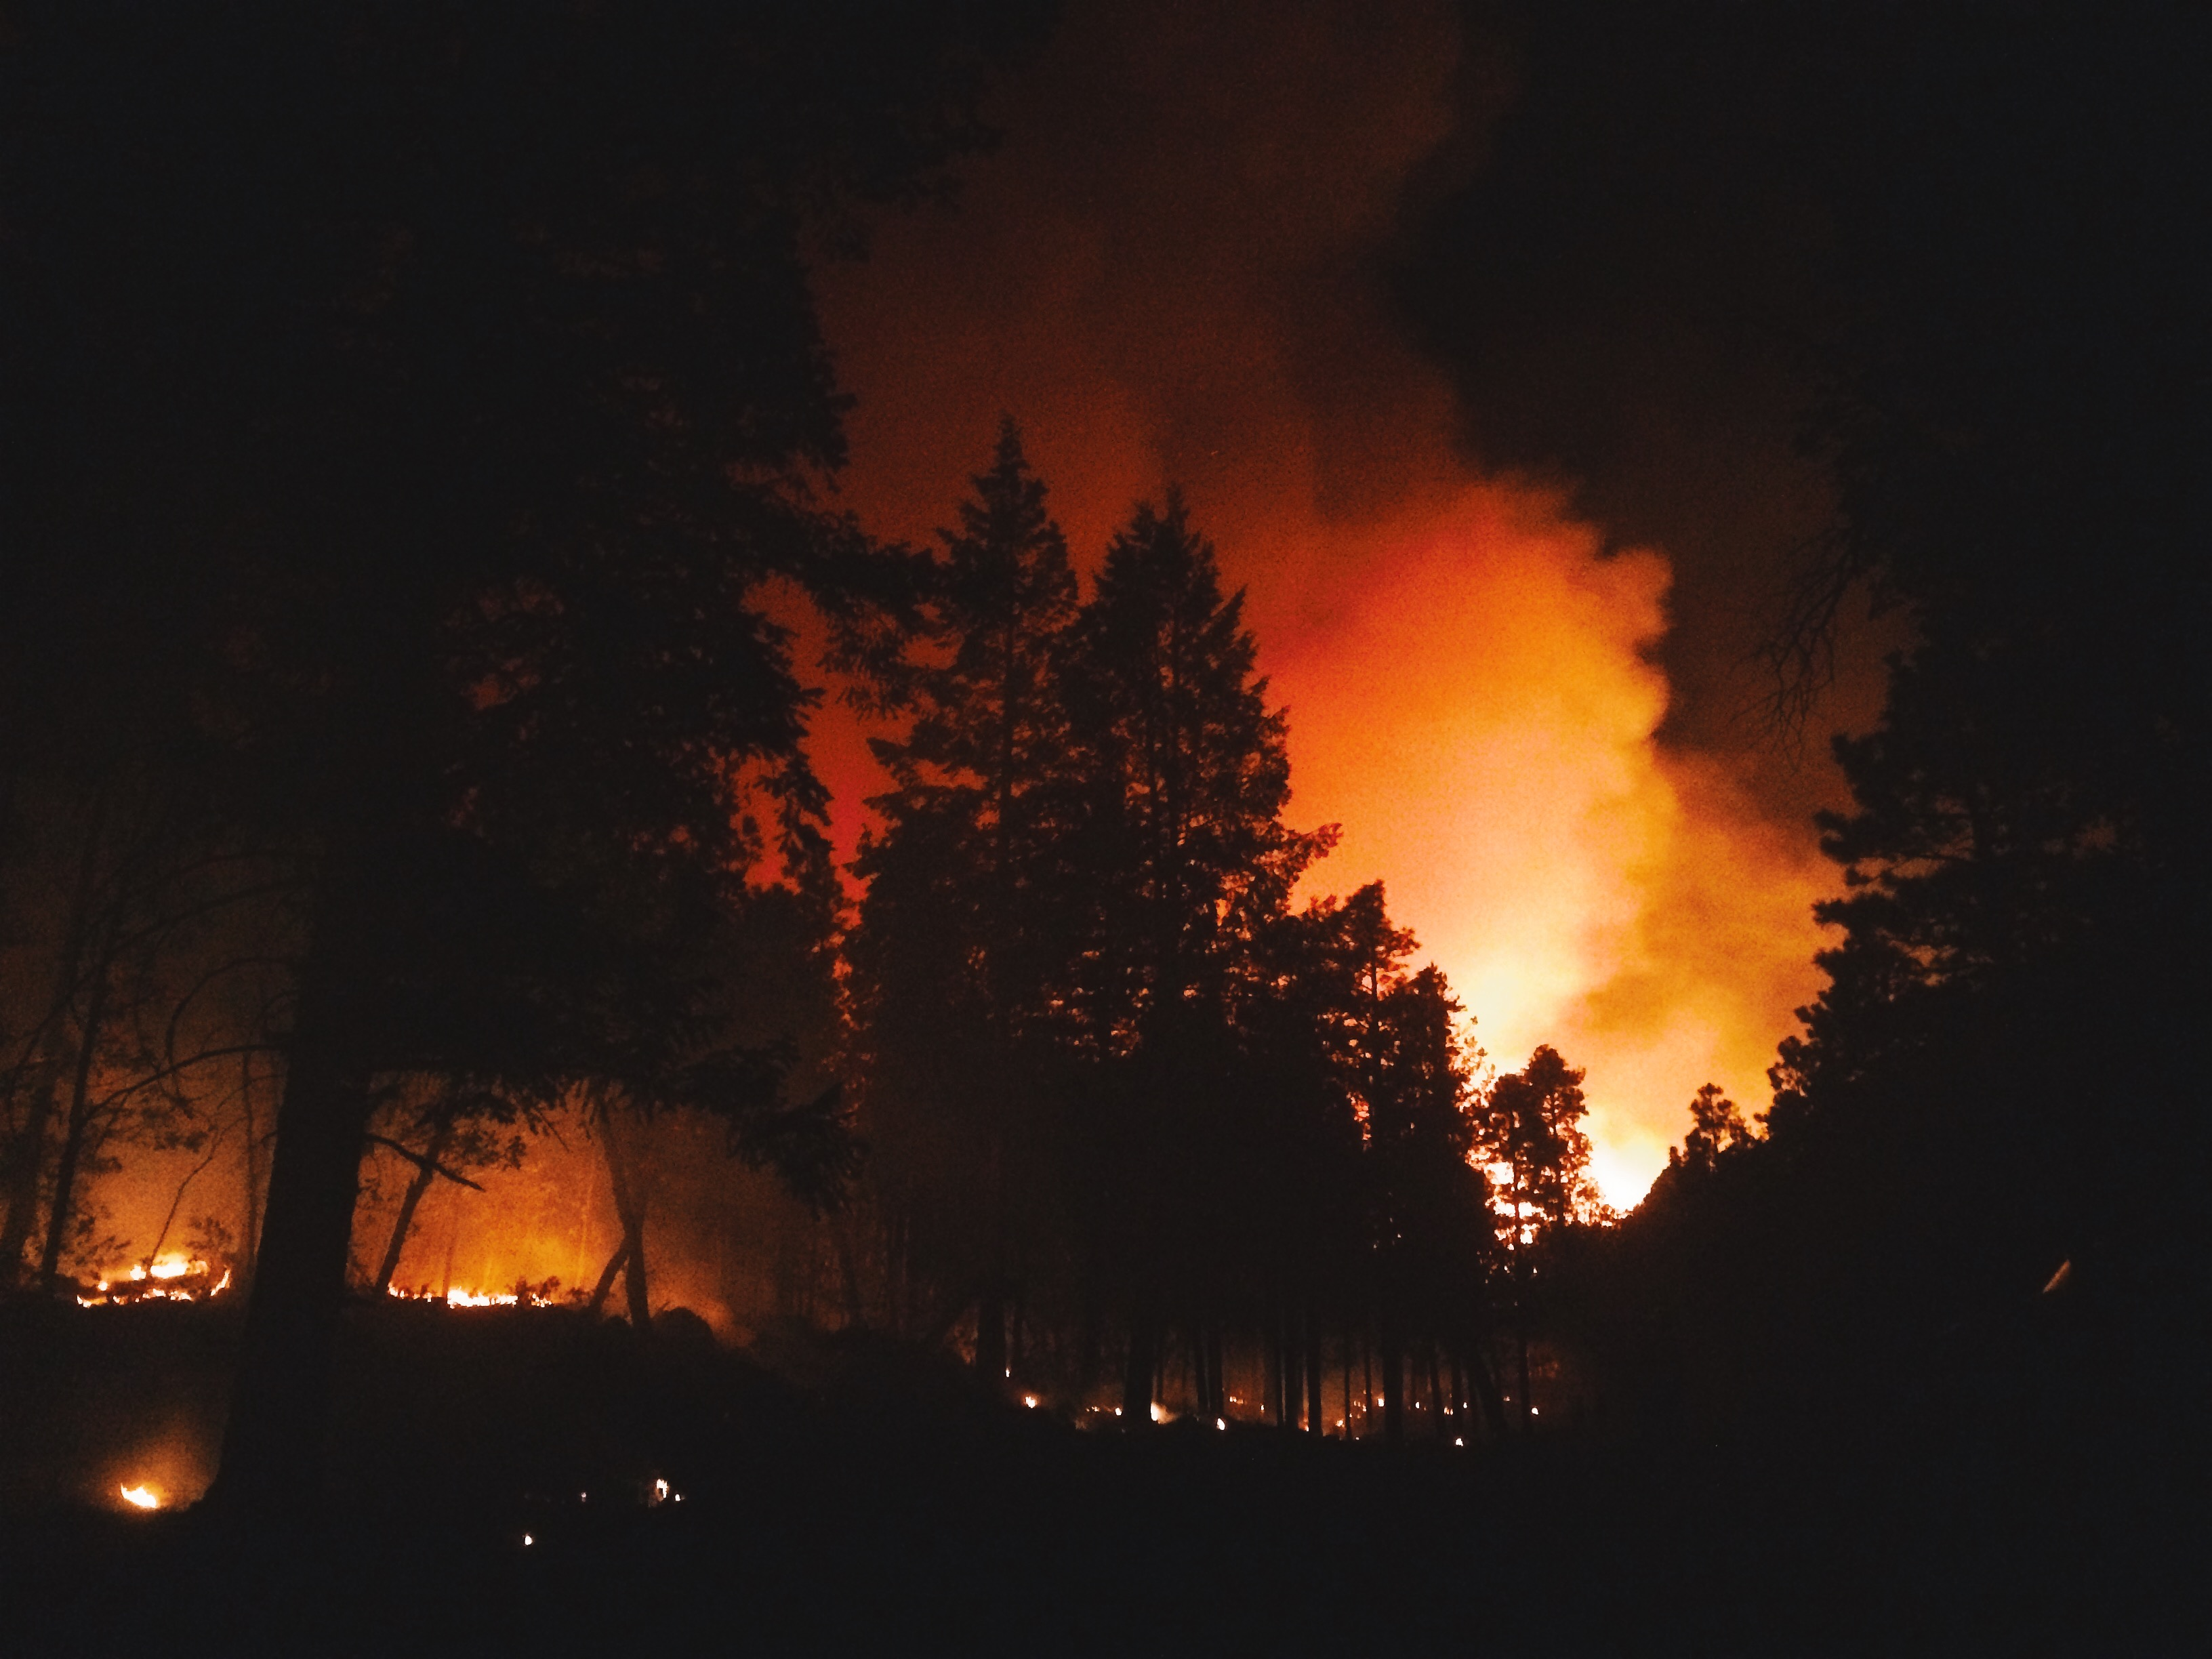 Night shot of wildland fire taken by ExpertVoice Expert Gregg Boydston